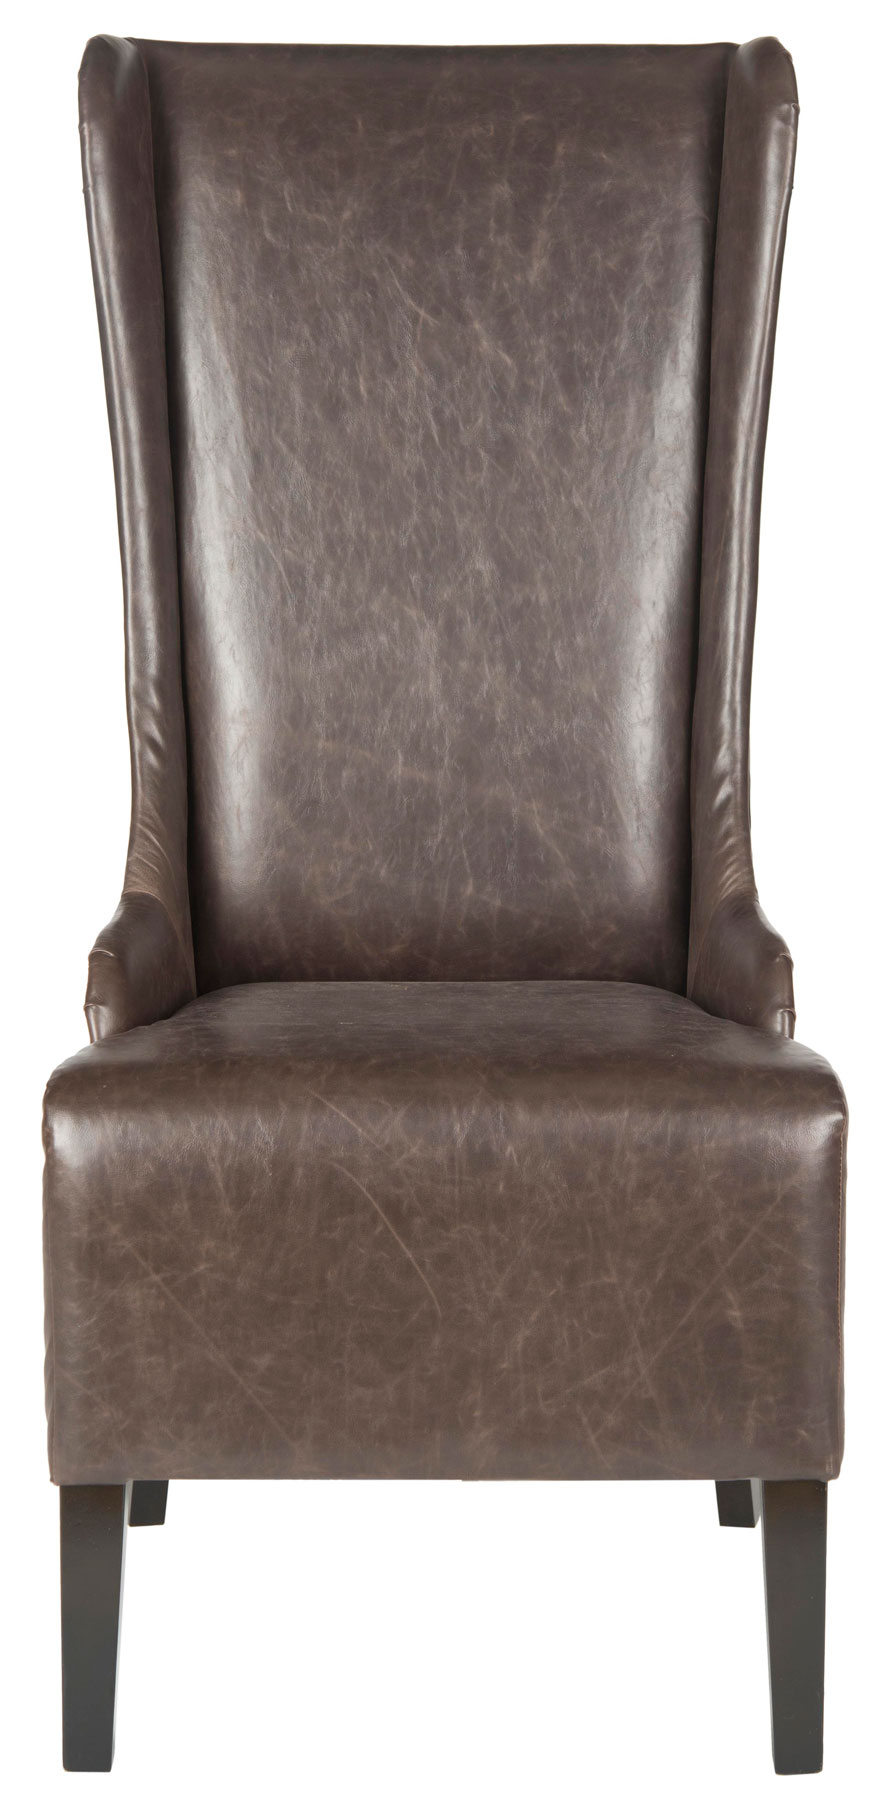 brown leather high back dining chairs baby beach chair with umbrella mcr4501n furniture by safavieh share this product